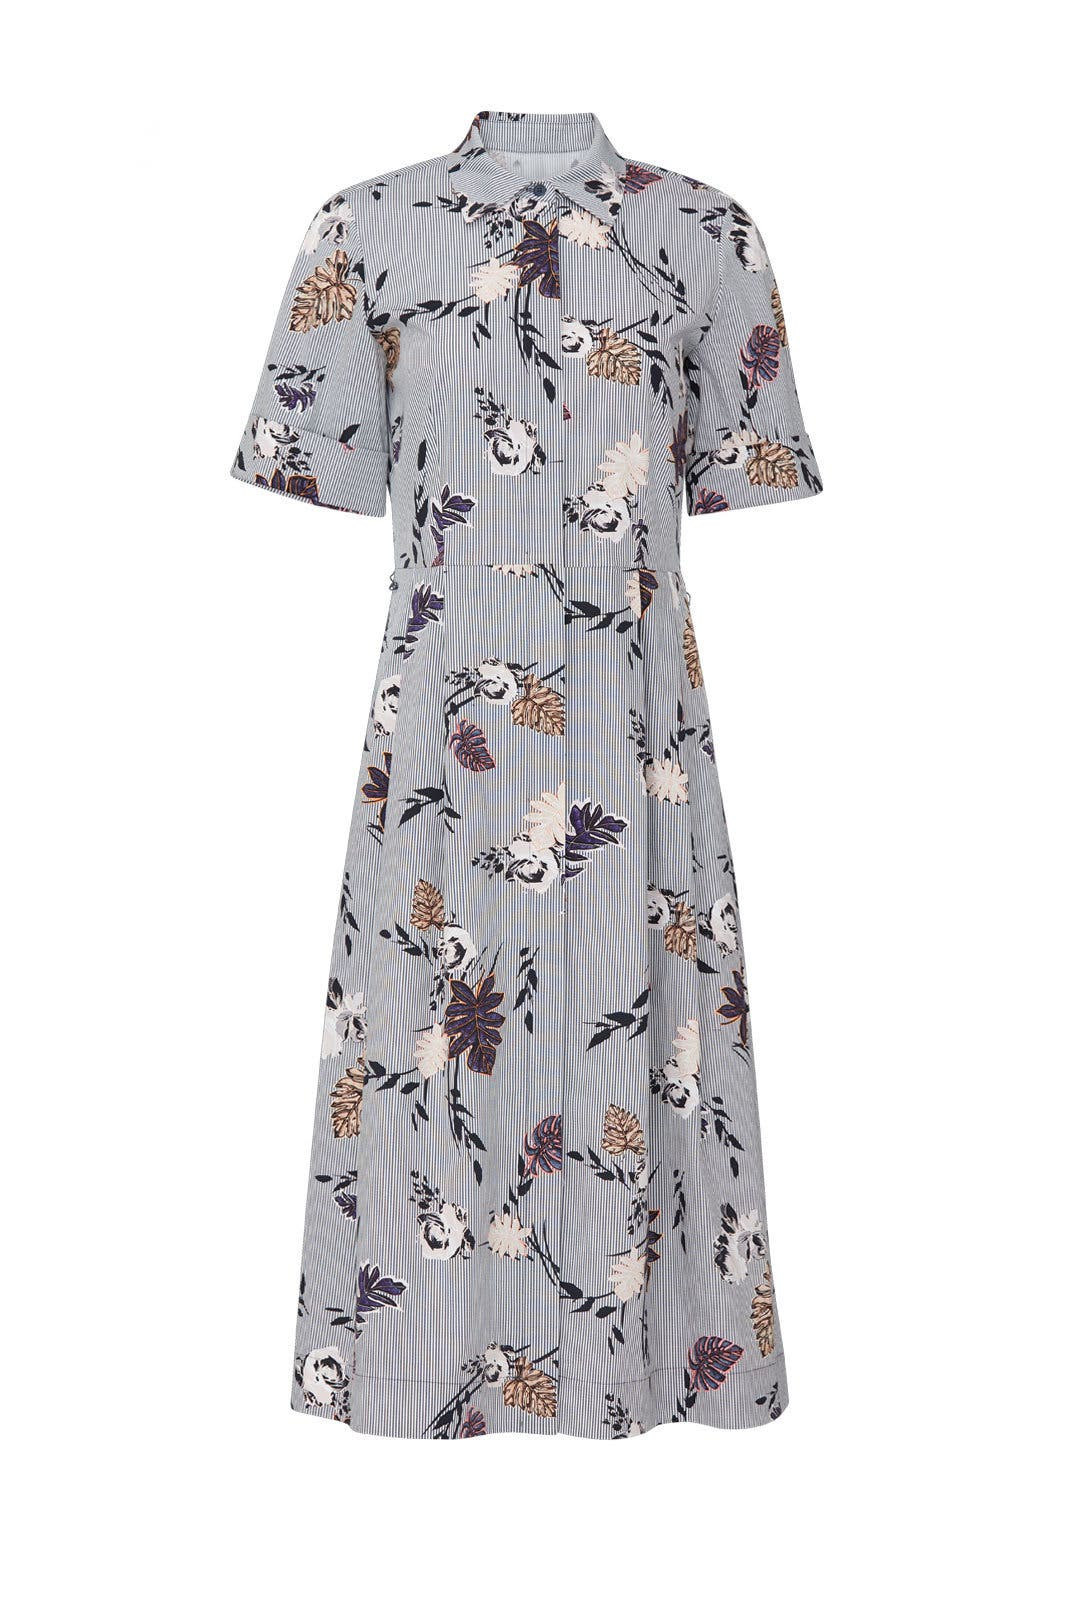 59c33ea68709 Eleni Dress by LAFAYETTE 148 New York for $100 | Rent the Runway